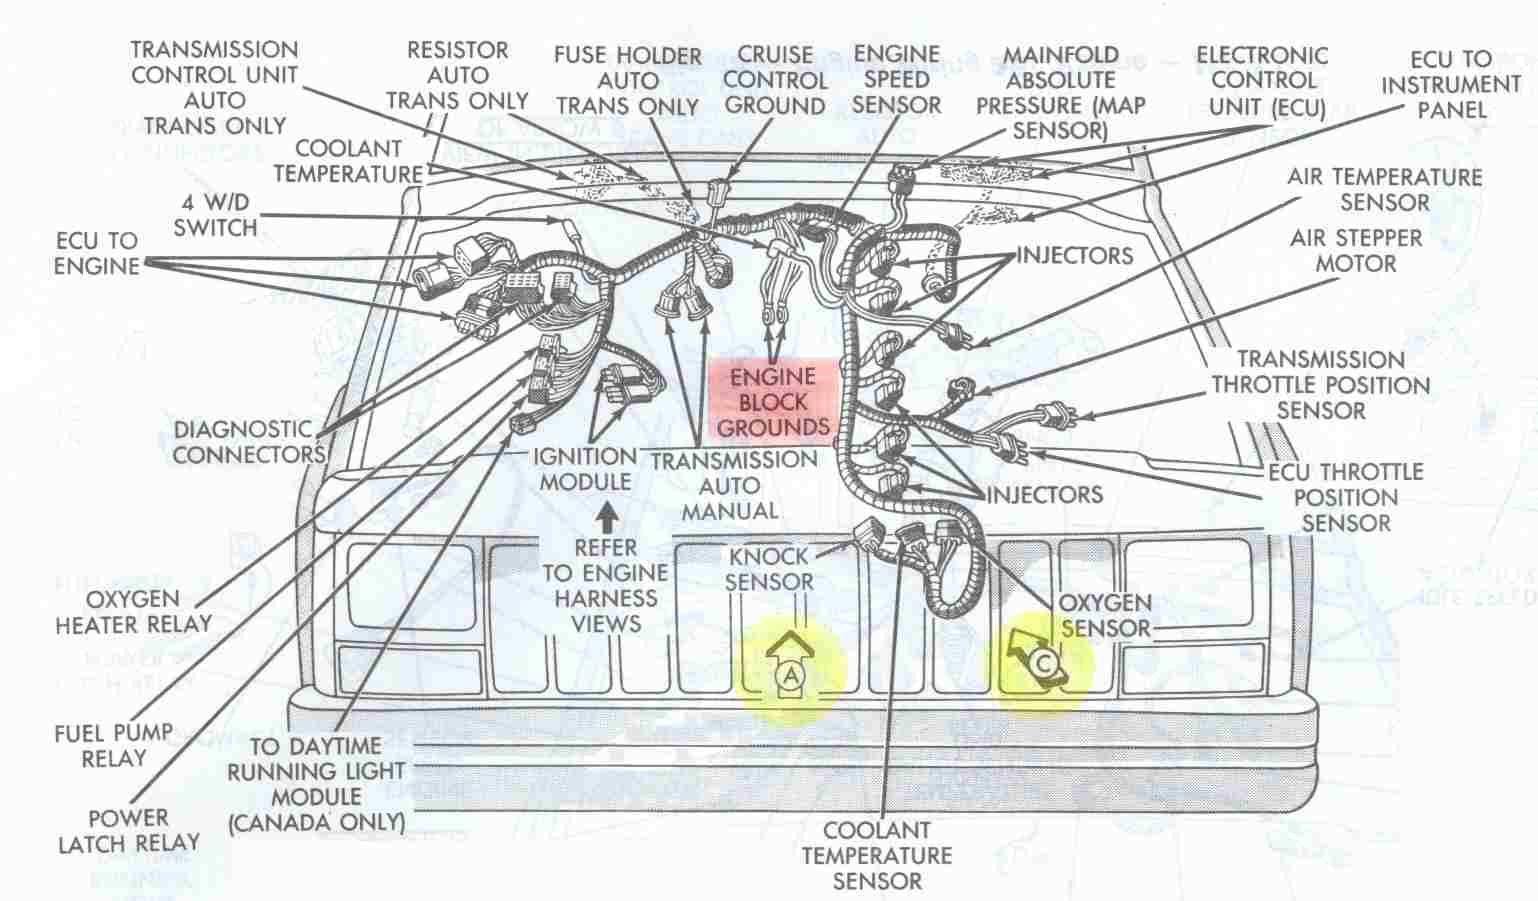 2014 Jeep Cherokee Wiring Harness - Schema Wiring Diagrams Jeep Grand Cherokee Headlight Wiring Harness on